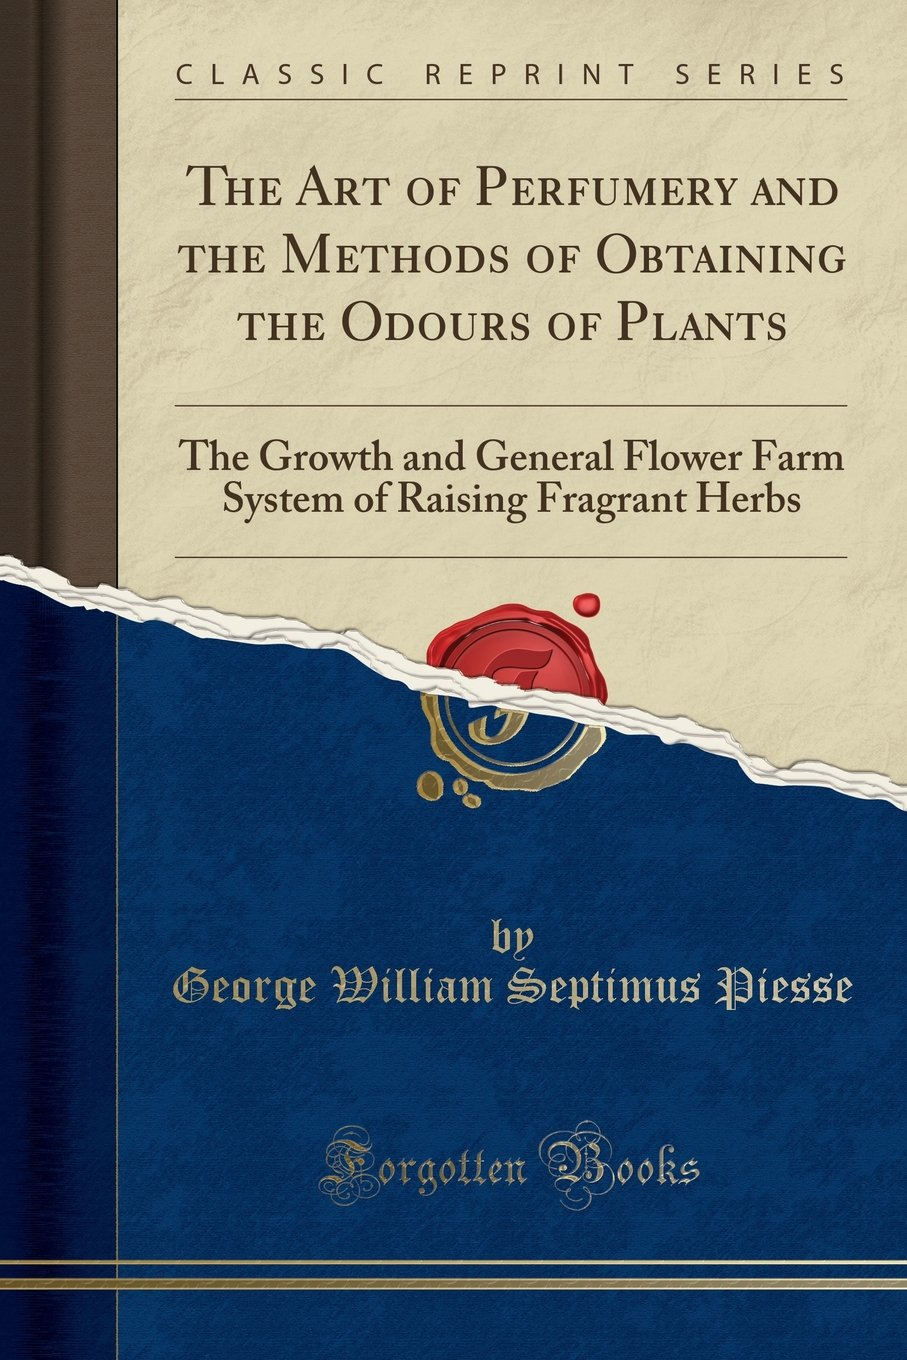 The Art of Perfumery and the Methods of Obtaining the Odours of Plants: The Growth and General Flower Farm System of Raising Fragrant Herbs (Classic Reprint) pdf